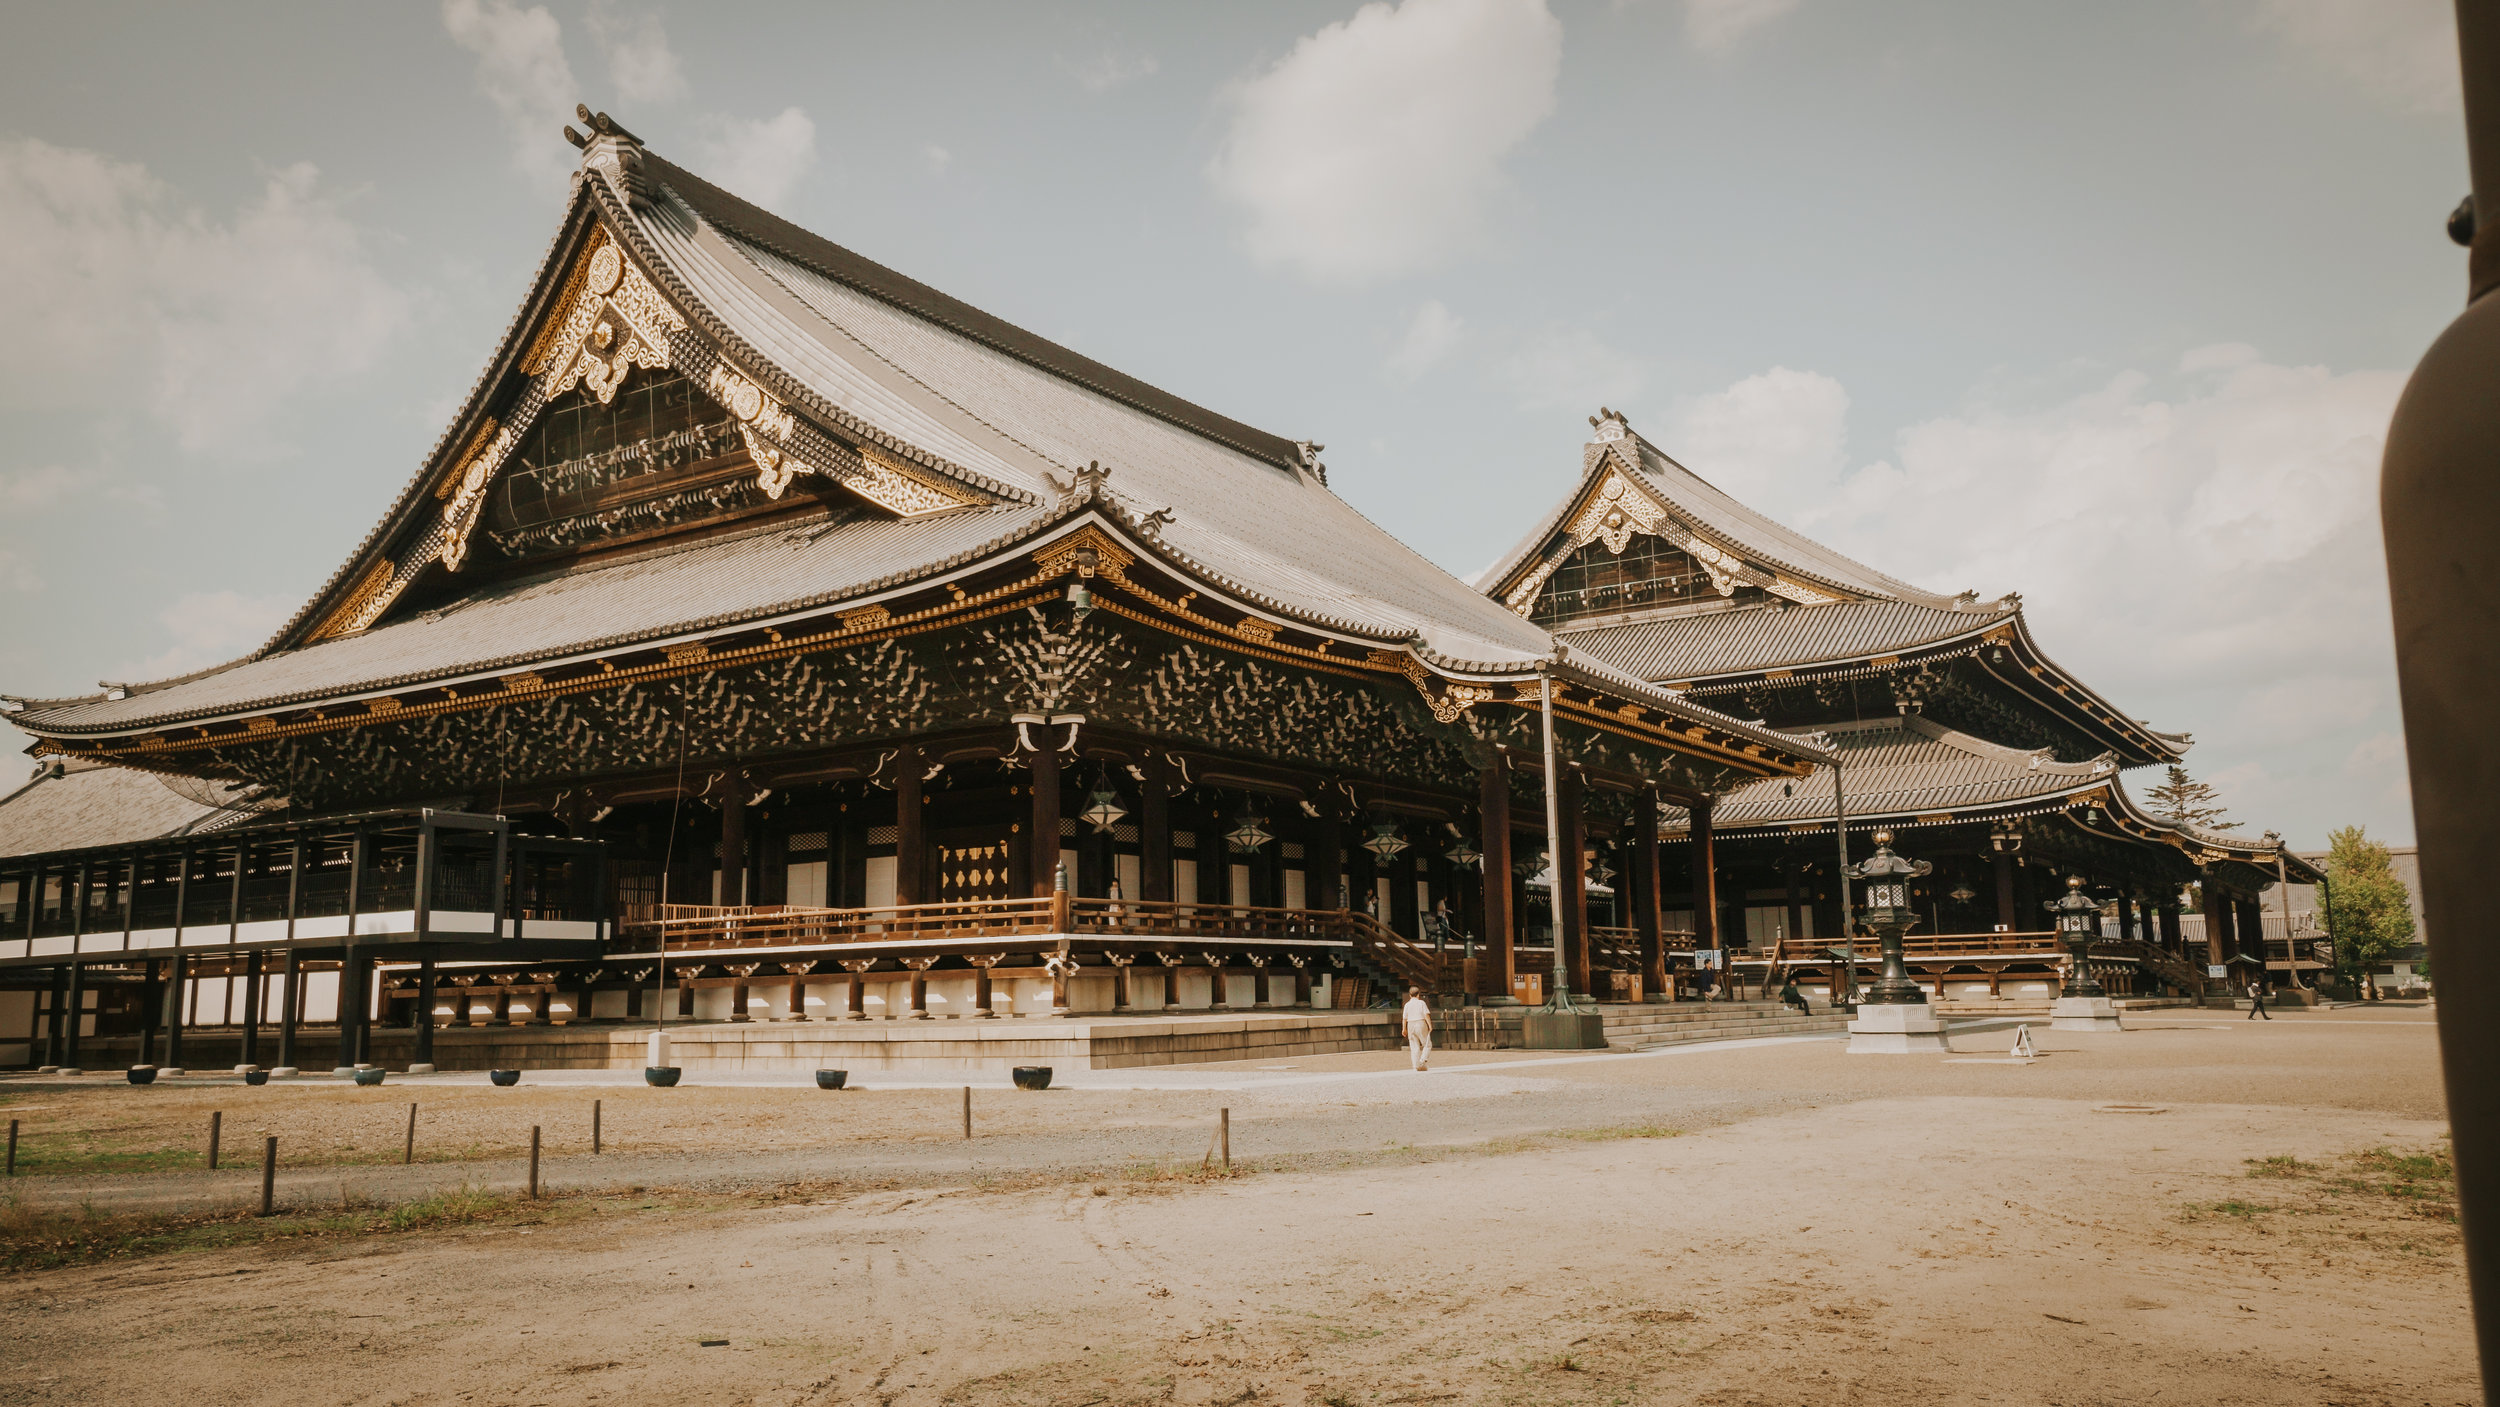 Higashi hongan temple is absolutely breathtaking in size. You have to be there to feel it.